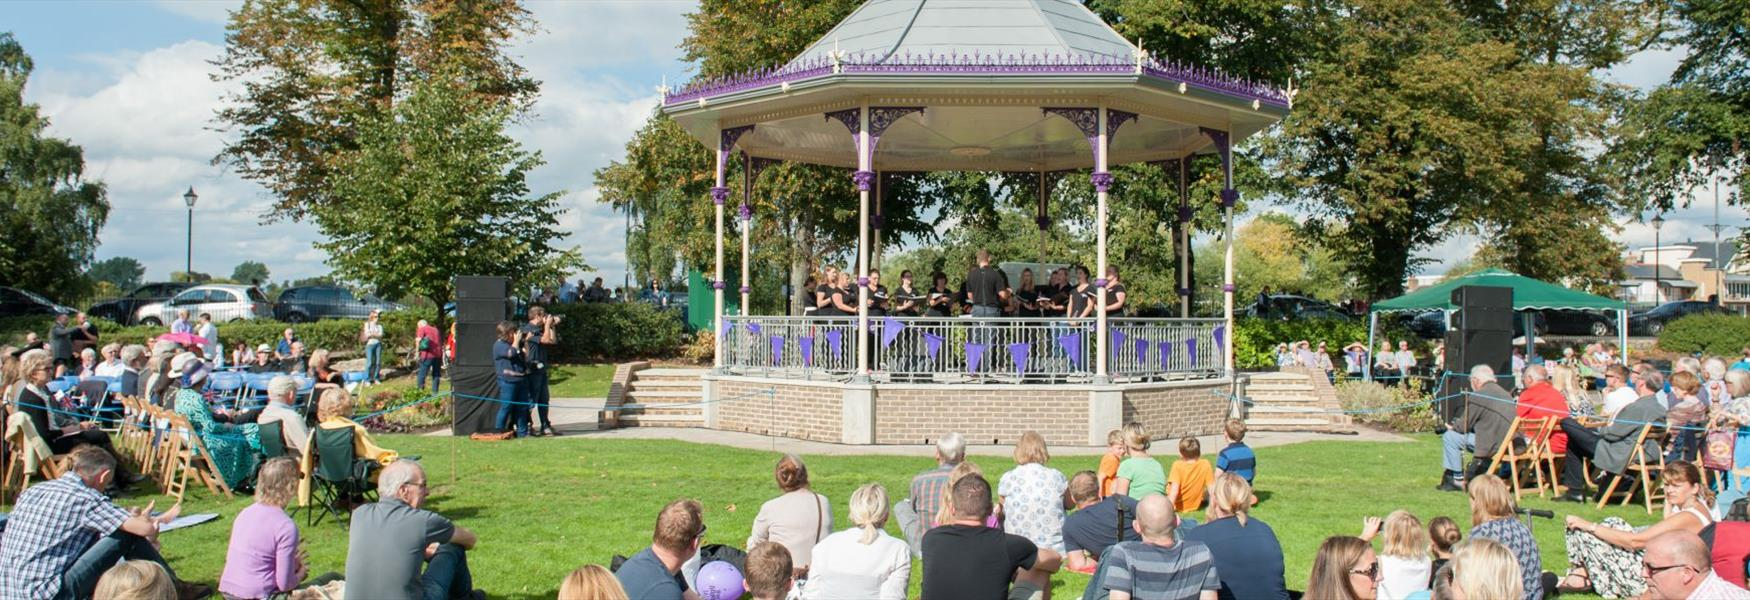 Enjoy free music in Windsor's Alexandra Gardens Bandstand